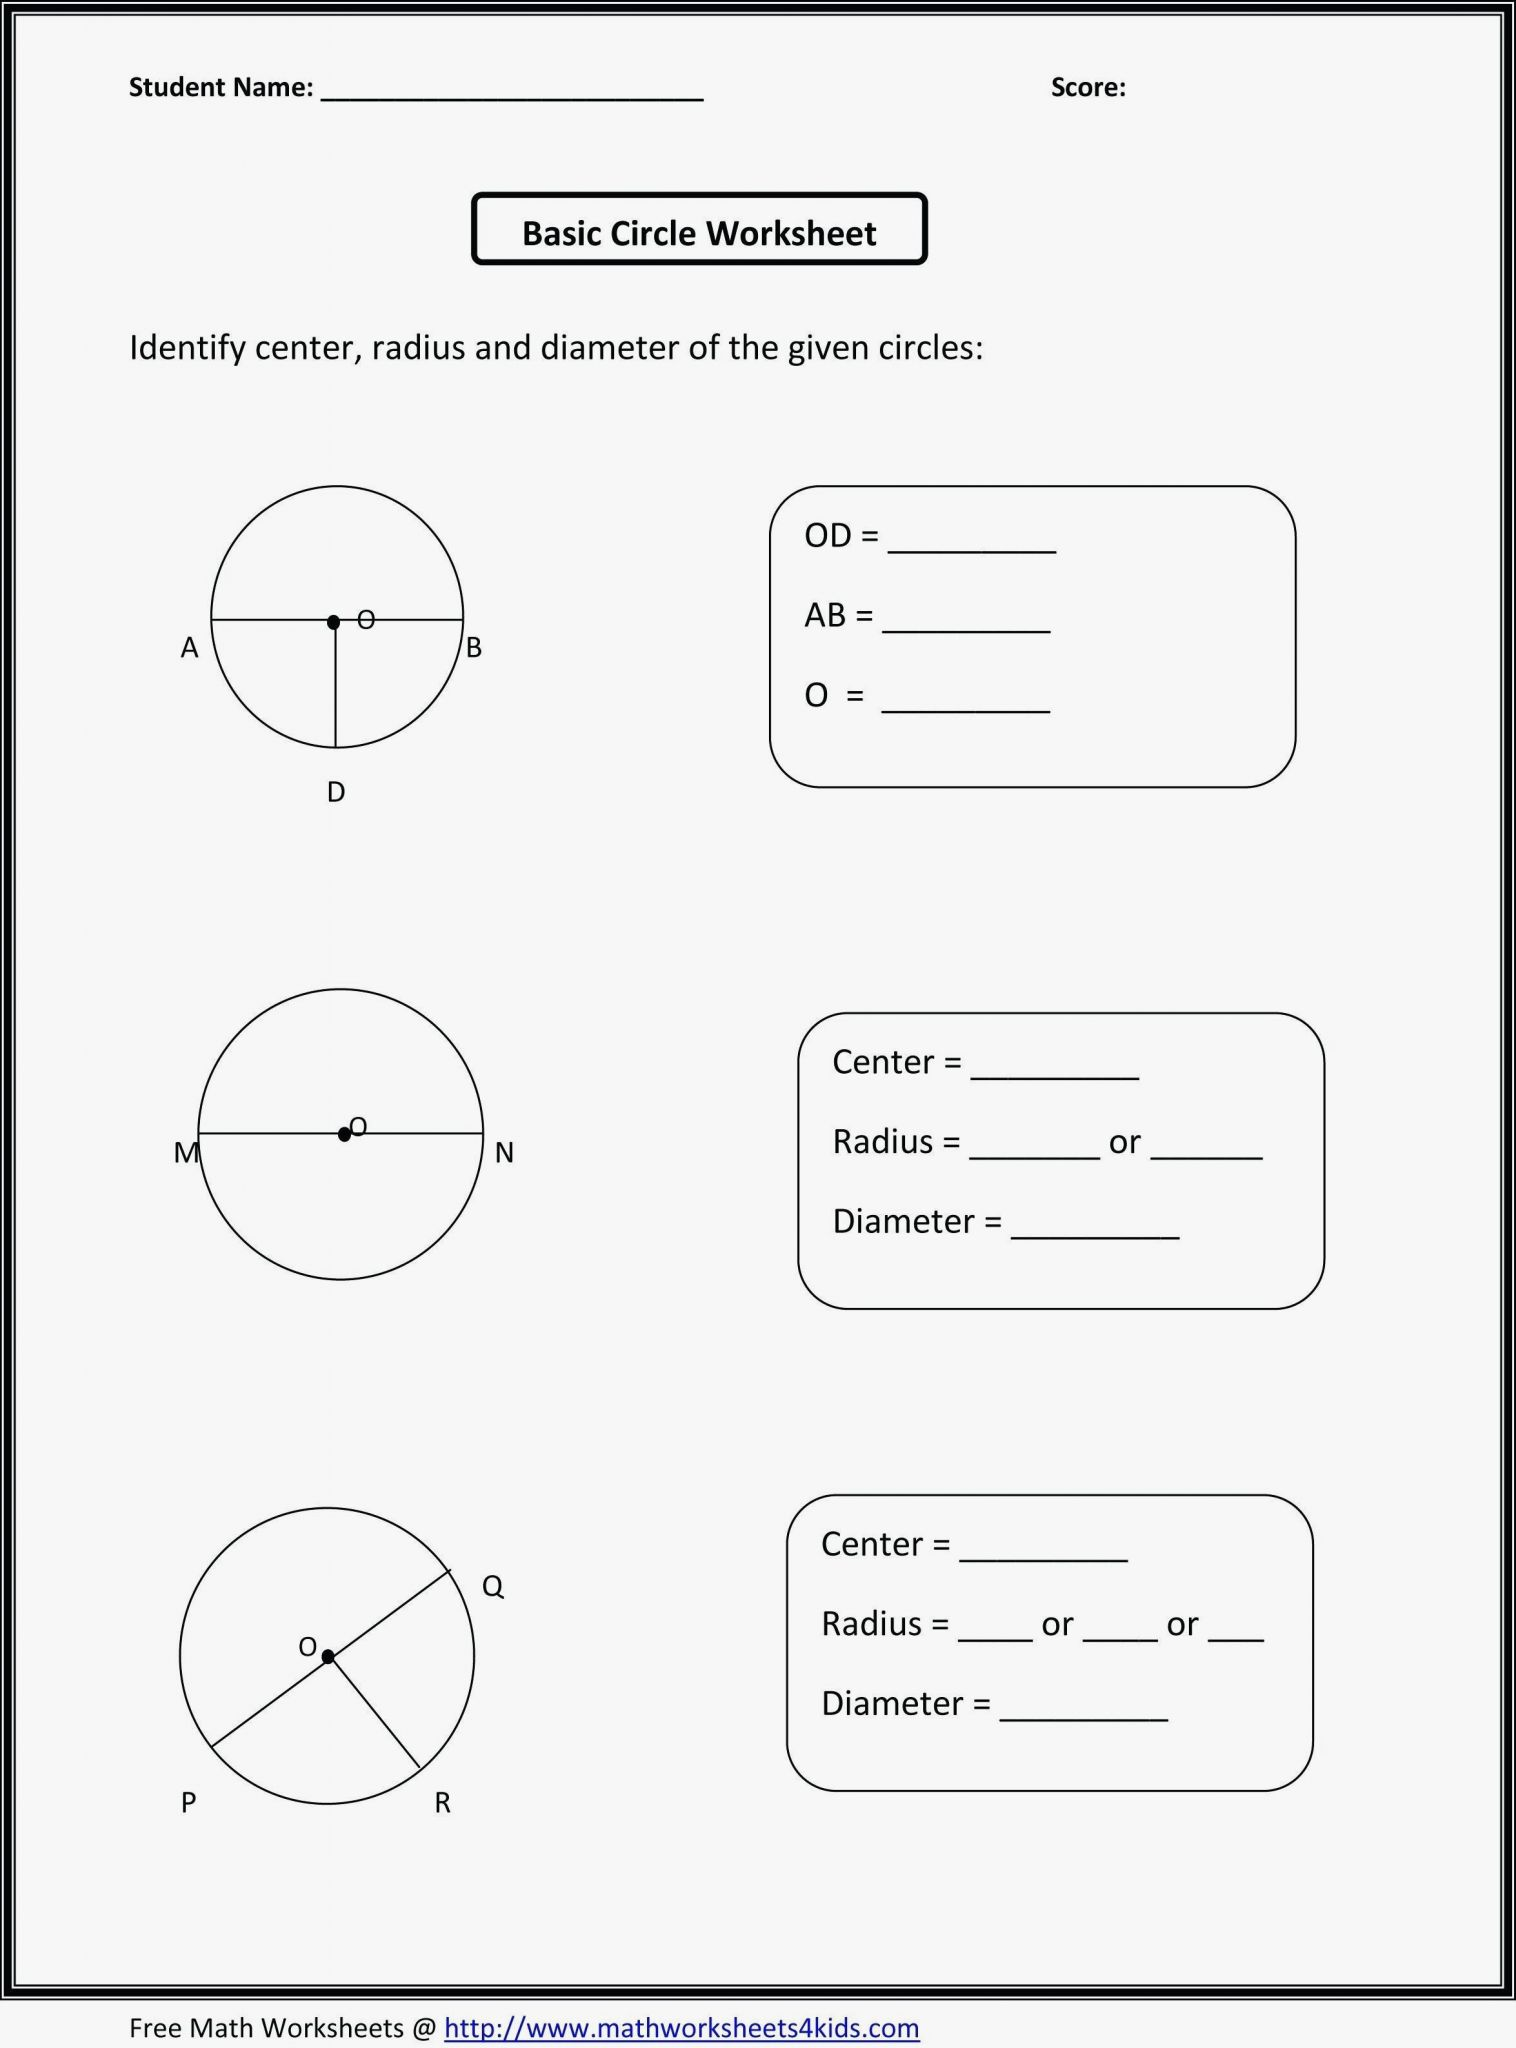 Animal And Plant Cell Labeling Worksheet